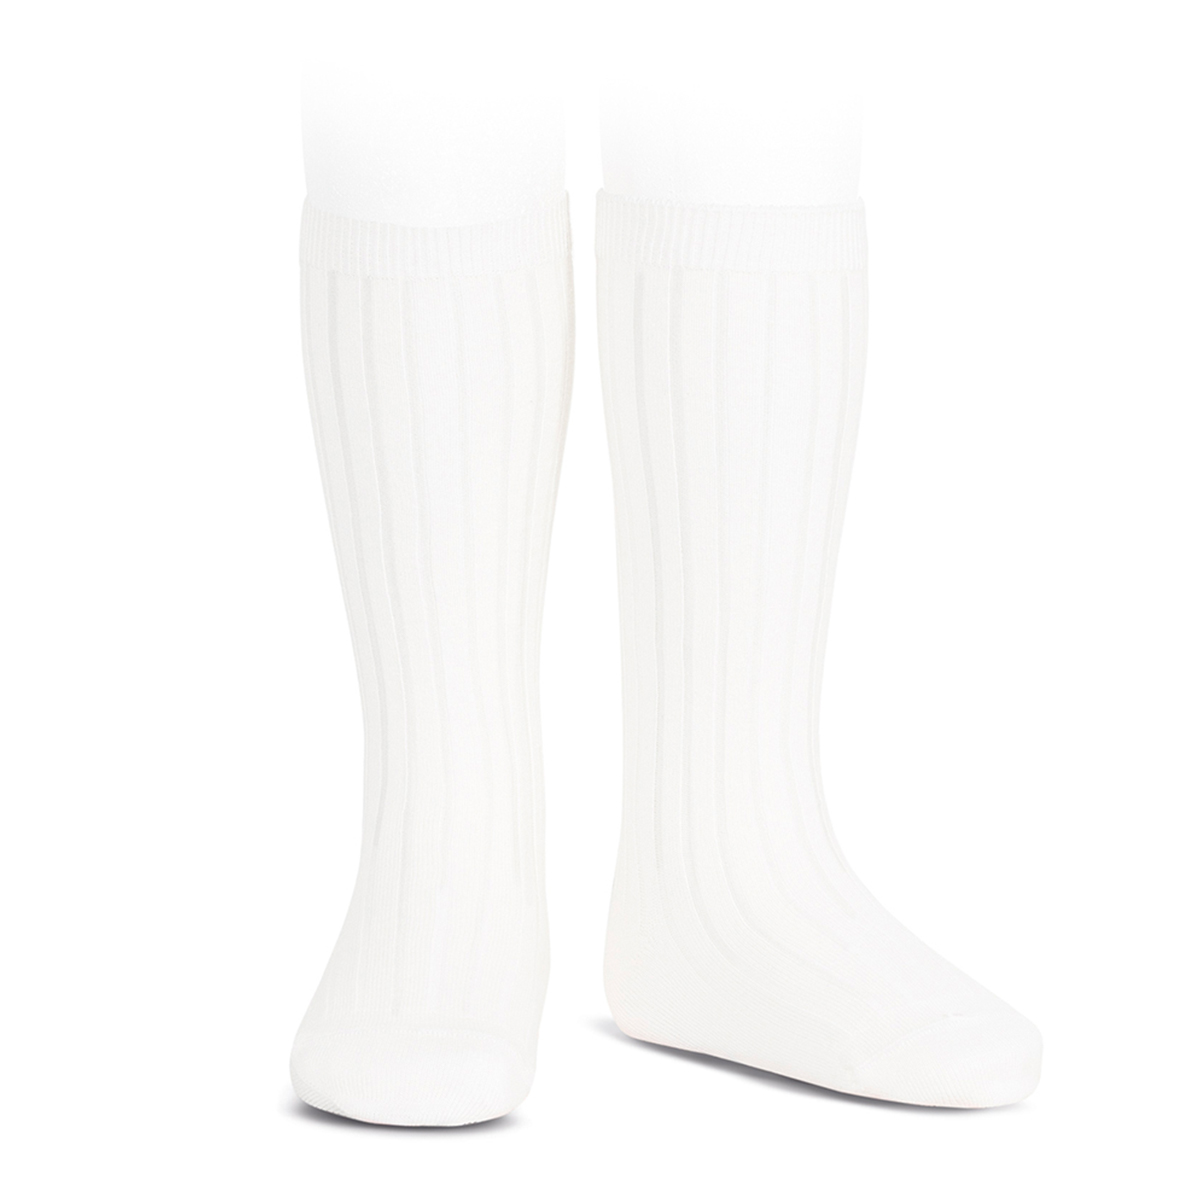 Condor Basic Rib Knee High Socks in White